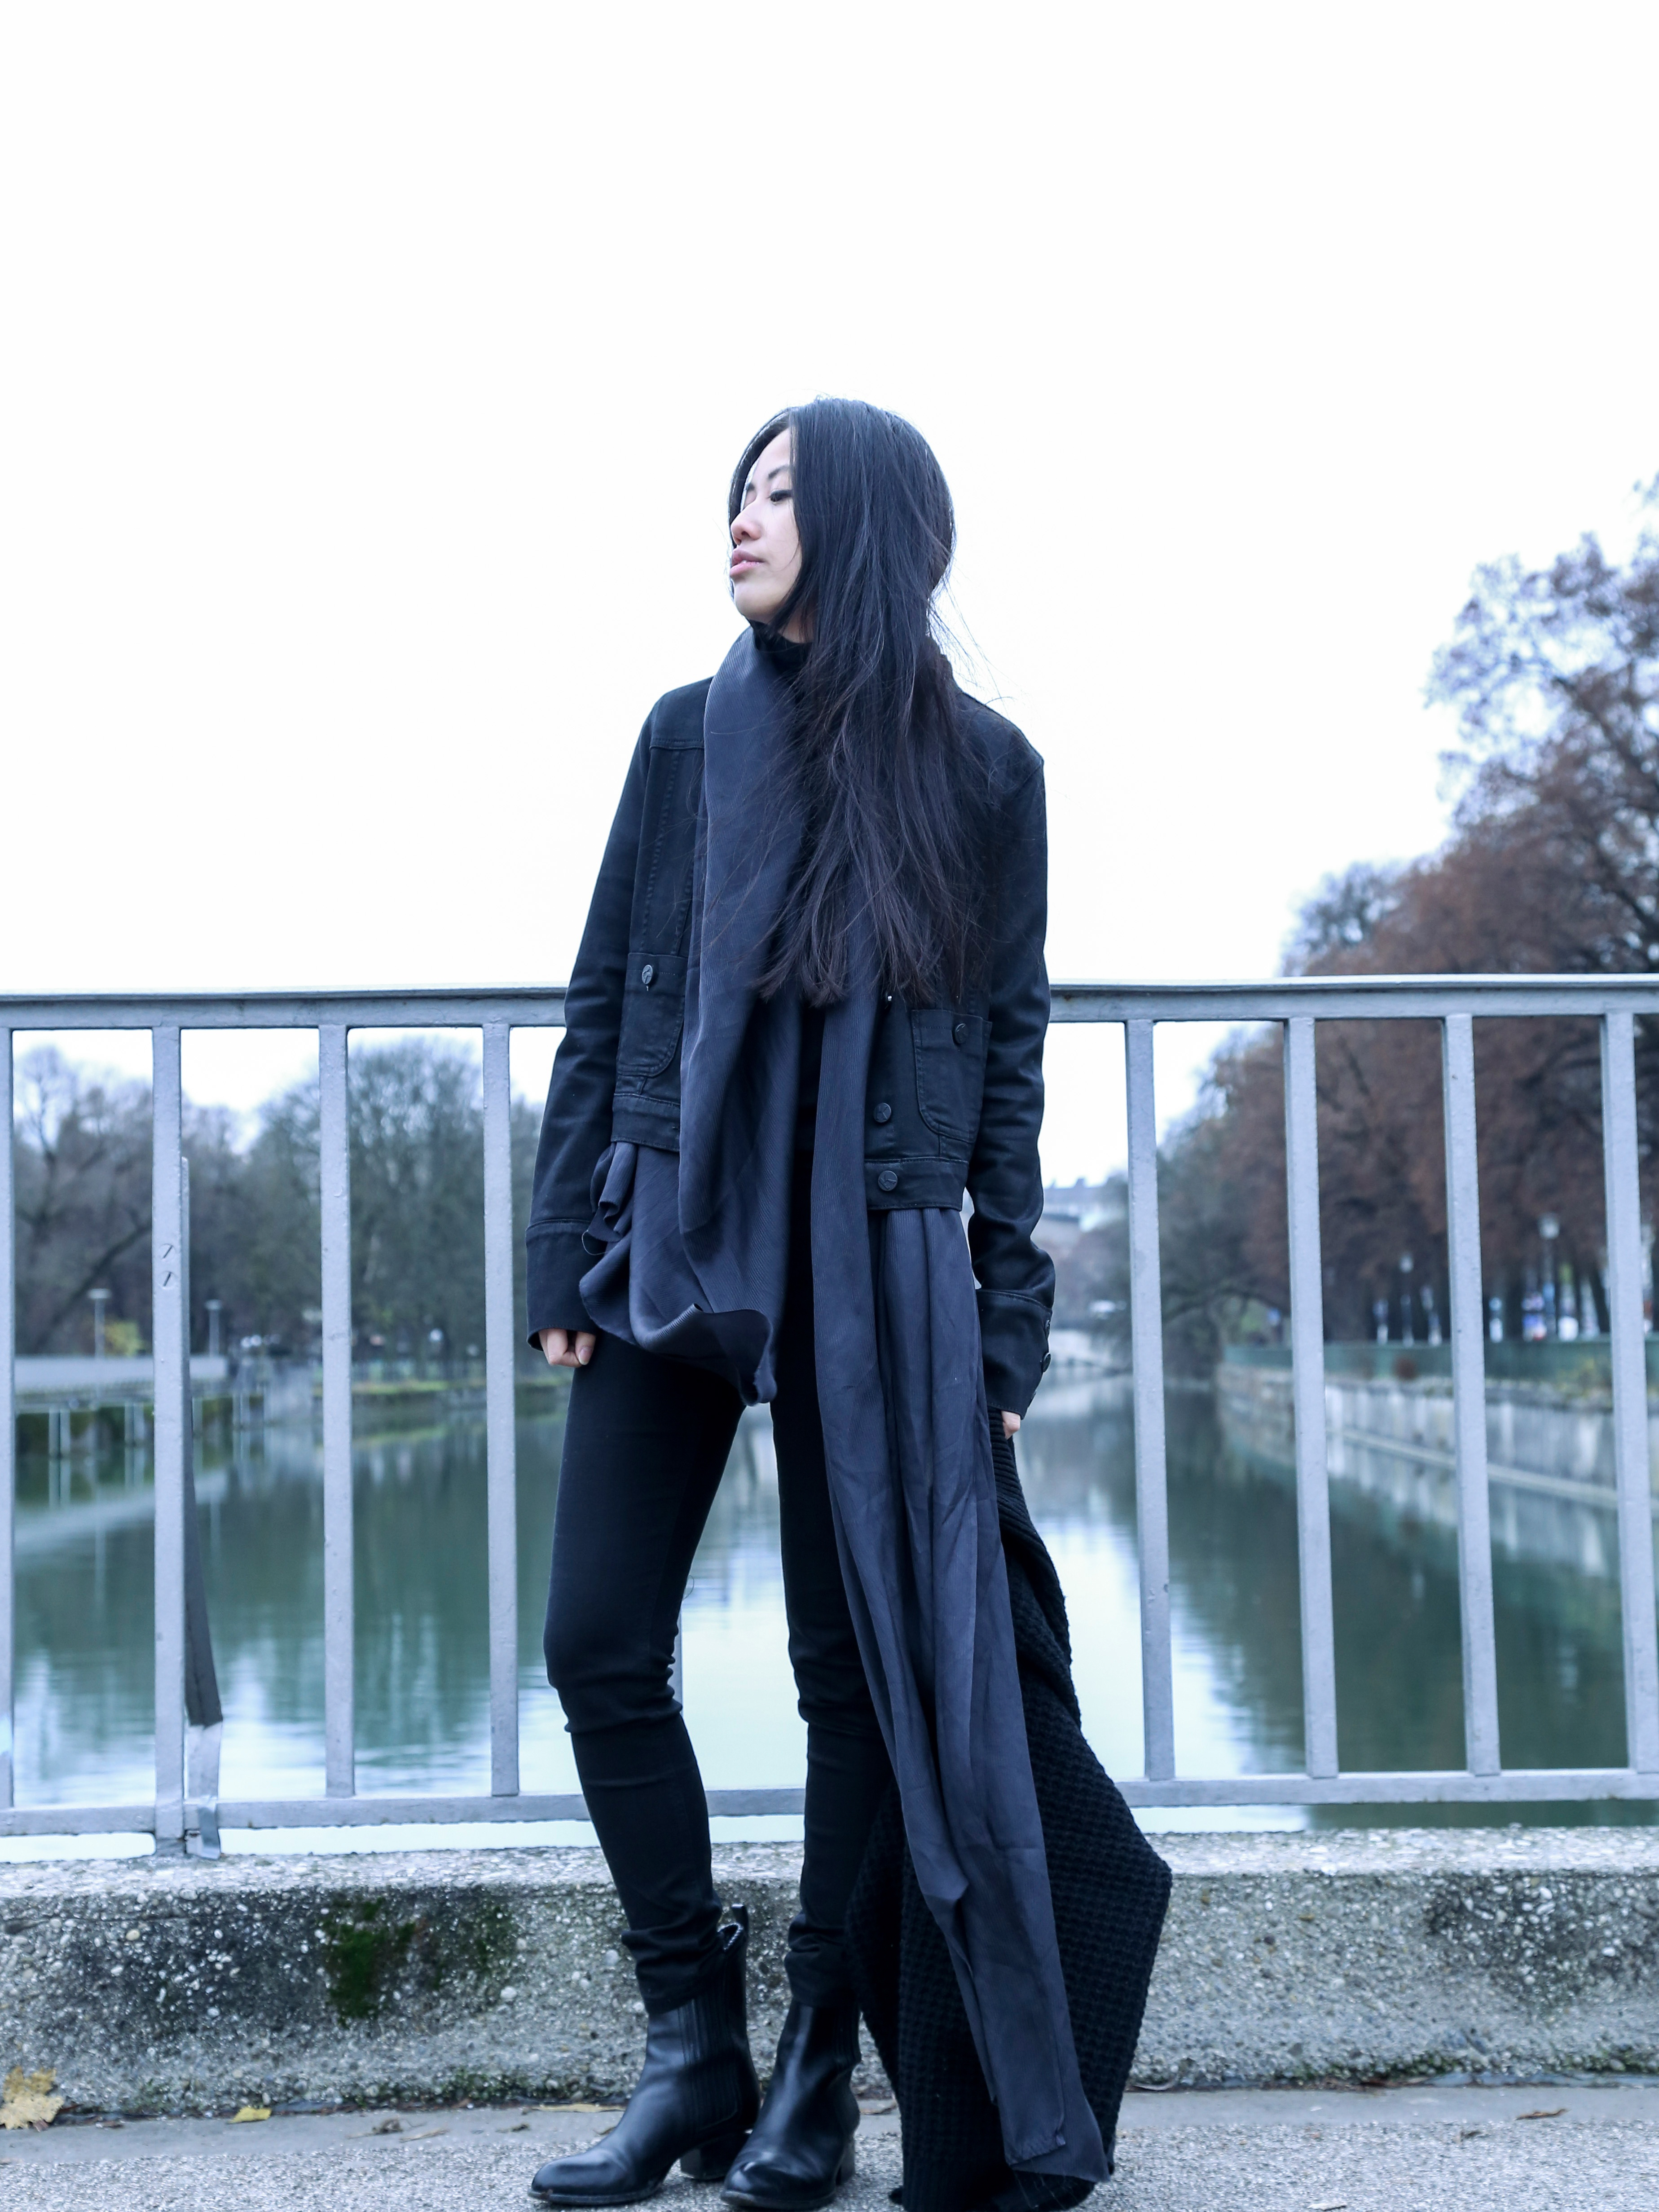 IHEARTALICE.DE – Fashion & Travel-Blog by Alice M. Huynh from Berlin/Germany: Karl Lagerfeld Jeans Jacket & Alexander Wang Boots / OOTD